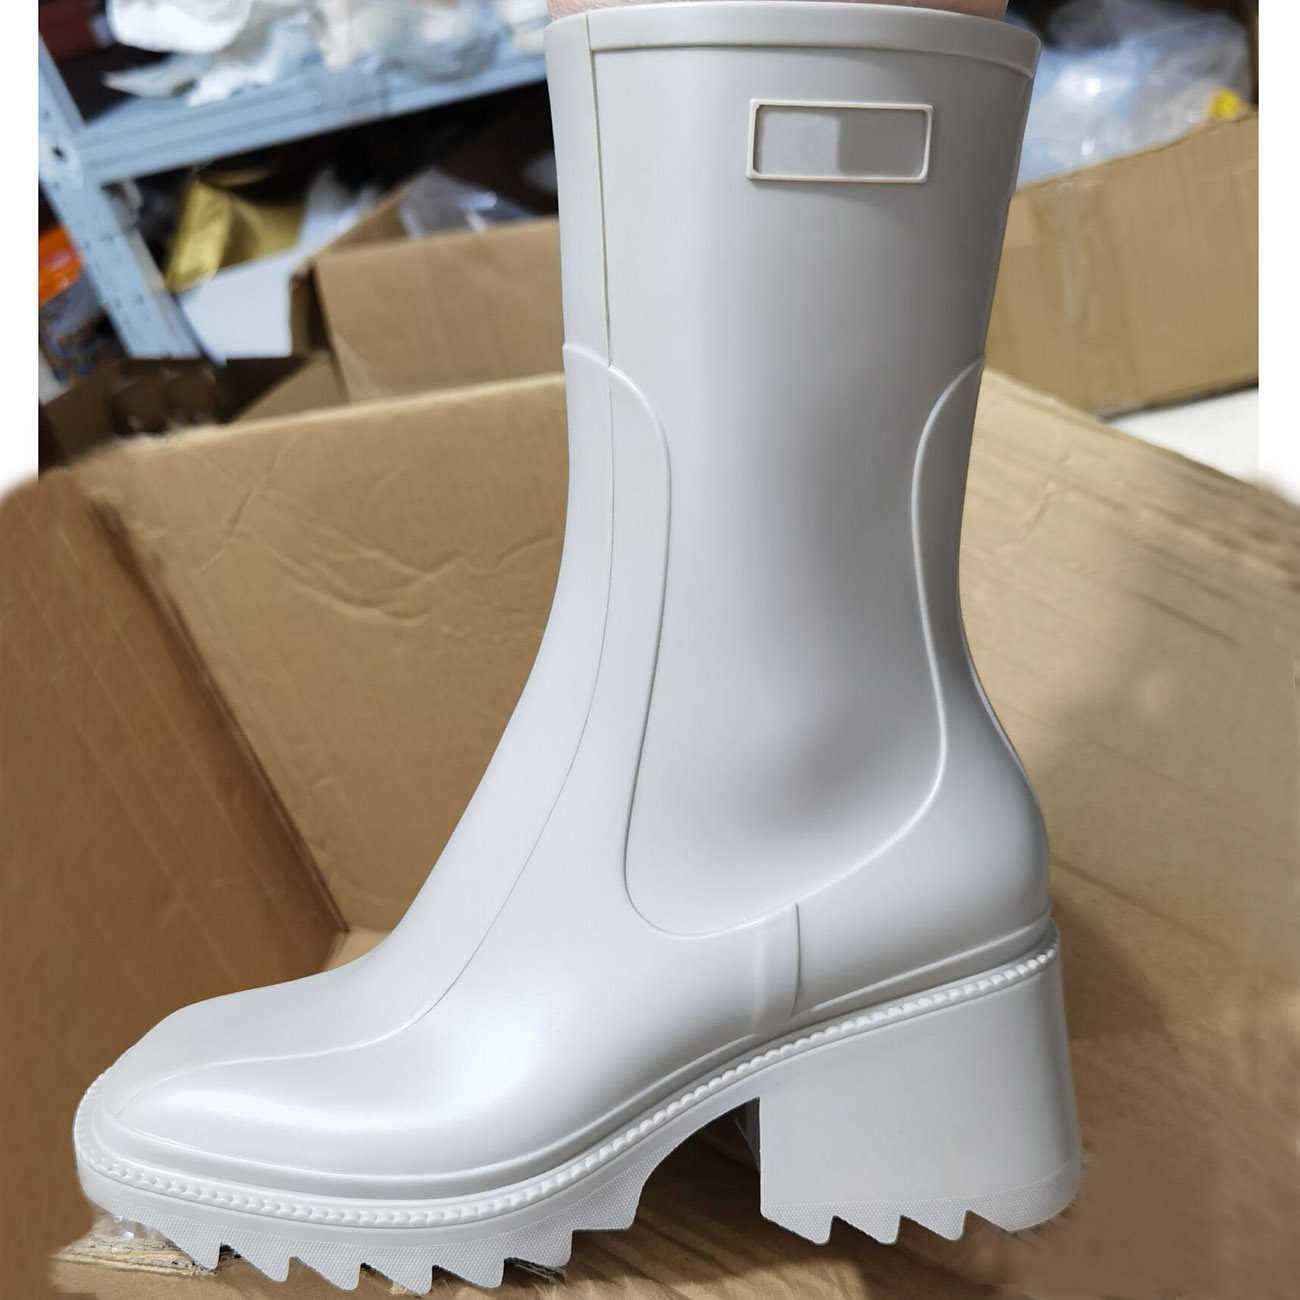 Cycuviva Square toe Rain boots for Women Chunky Heel Thick Sole Ankle Boots Designer Chelsea Boots Ladies Rubber Boot Rain Shoes Y0910